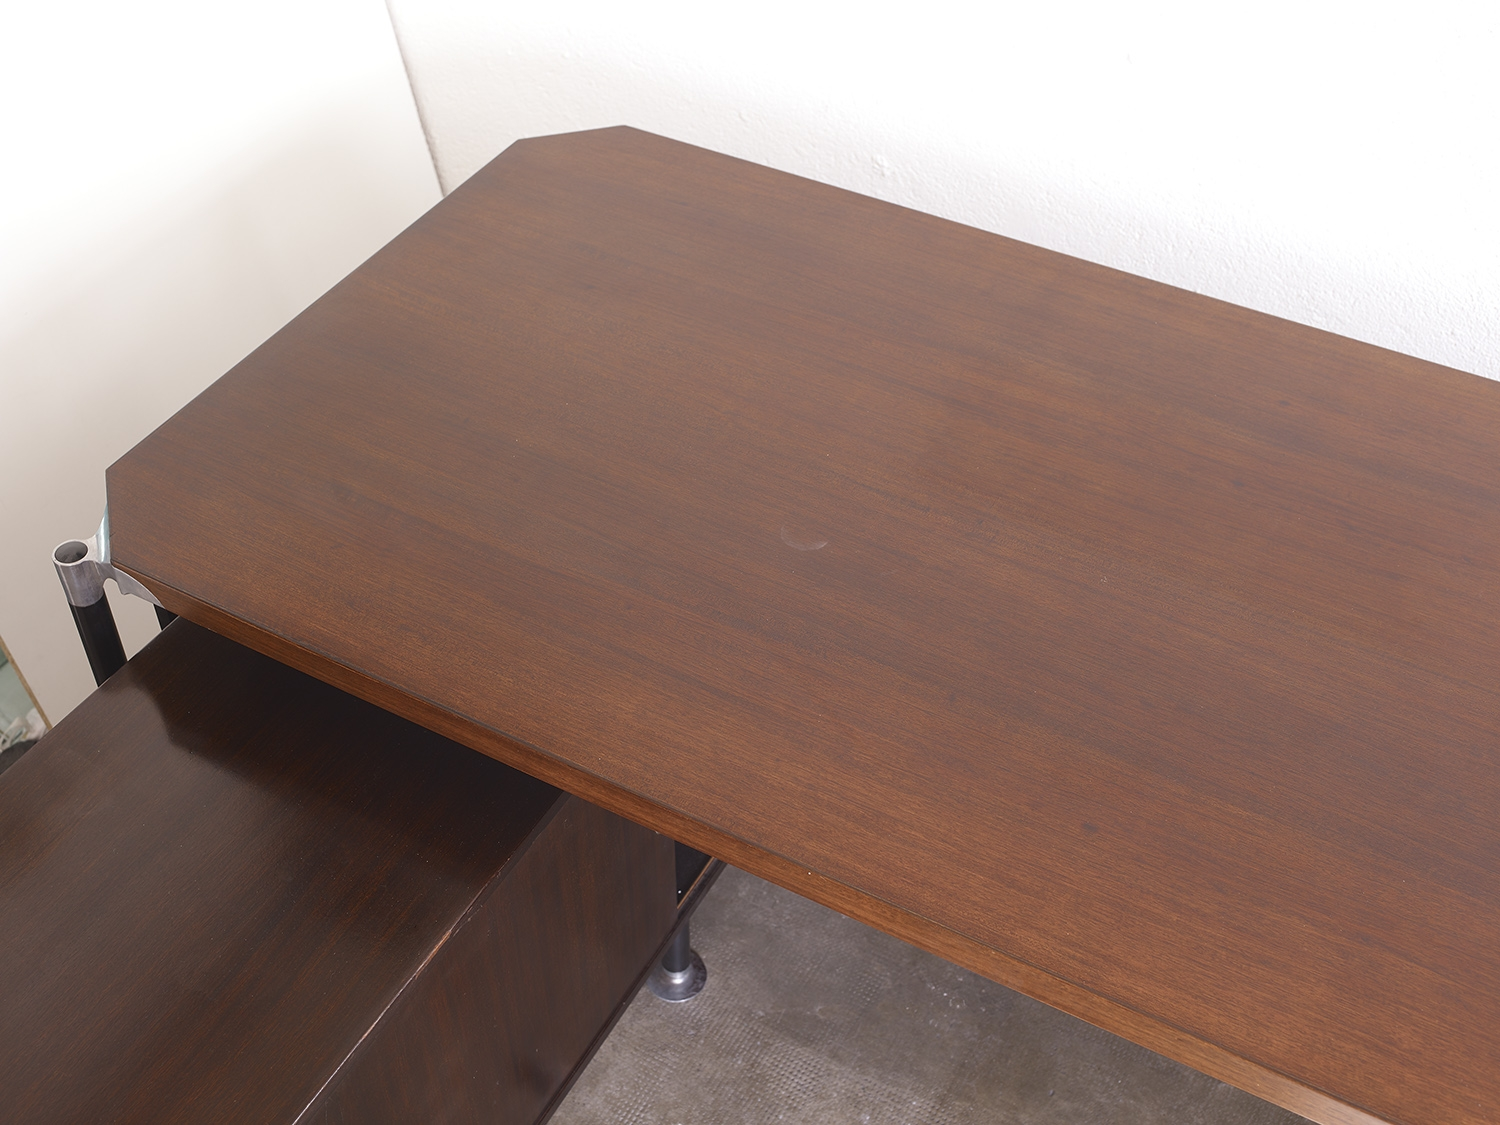 rosewood-desk-by-ico-parisi-for-mim-italia-image-05